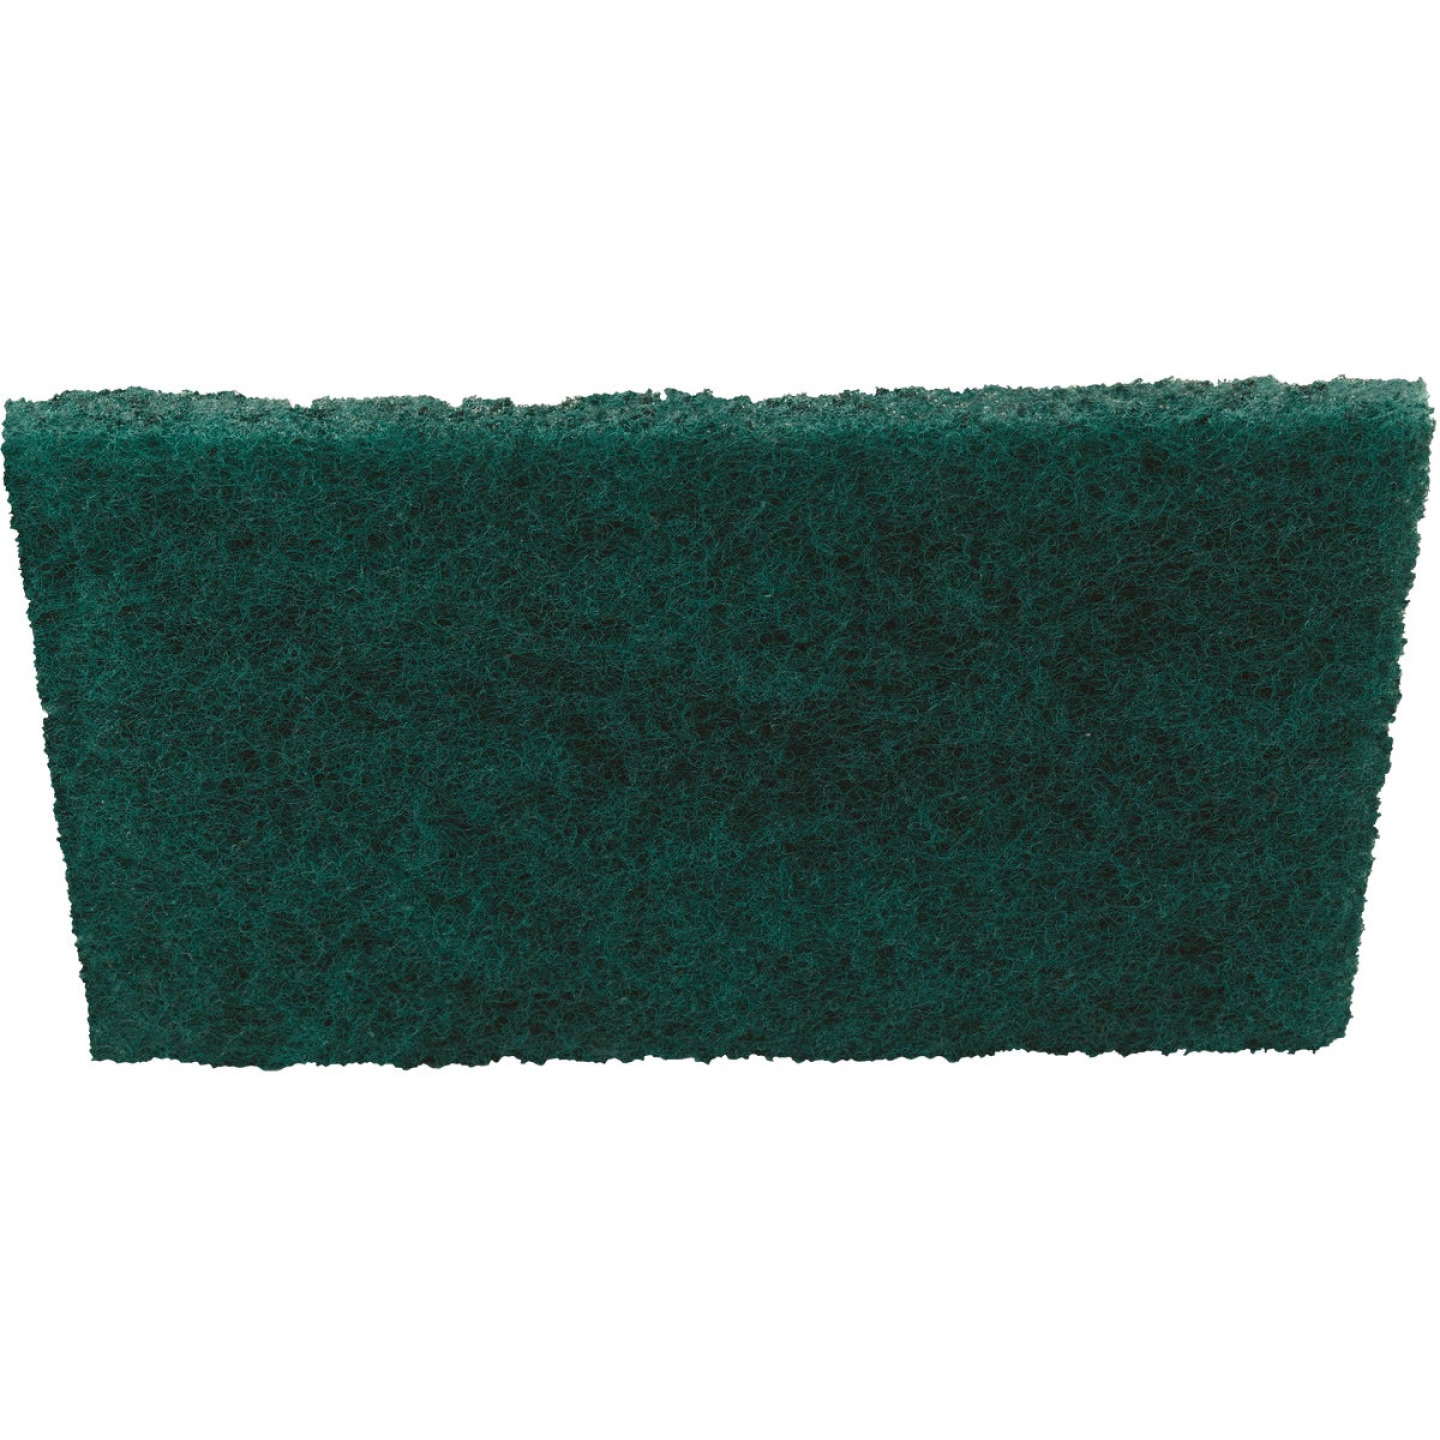 3M Scotch-Brite Heavy Duty Scouring Pad Image 4